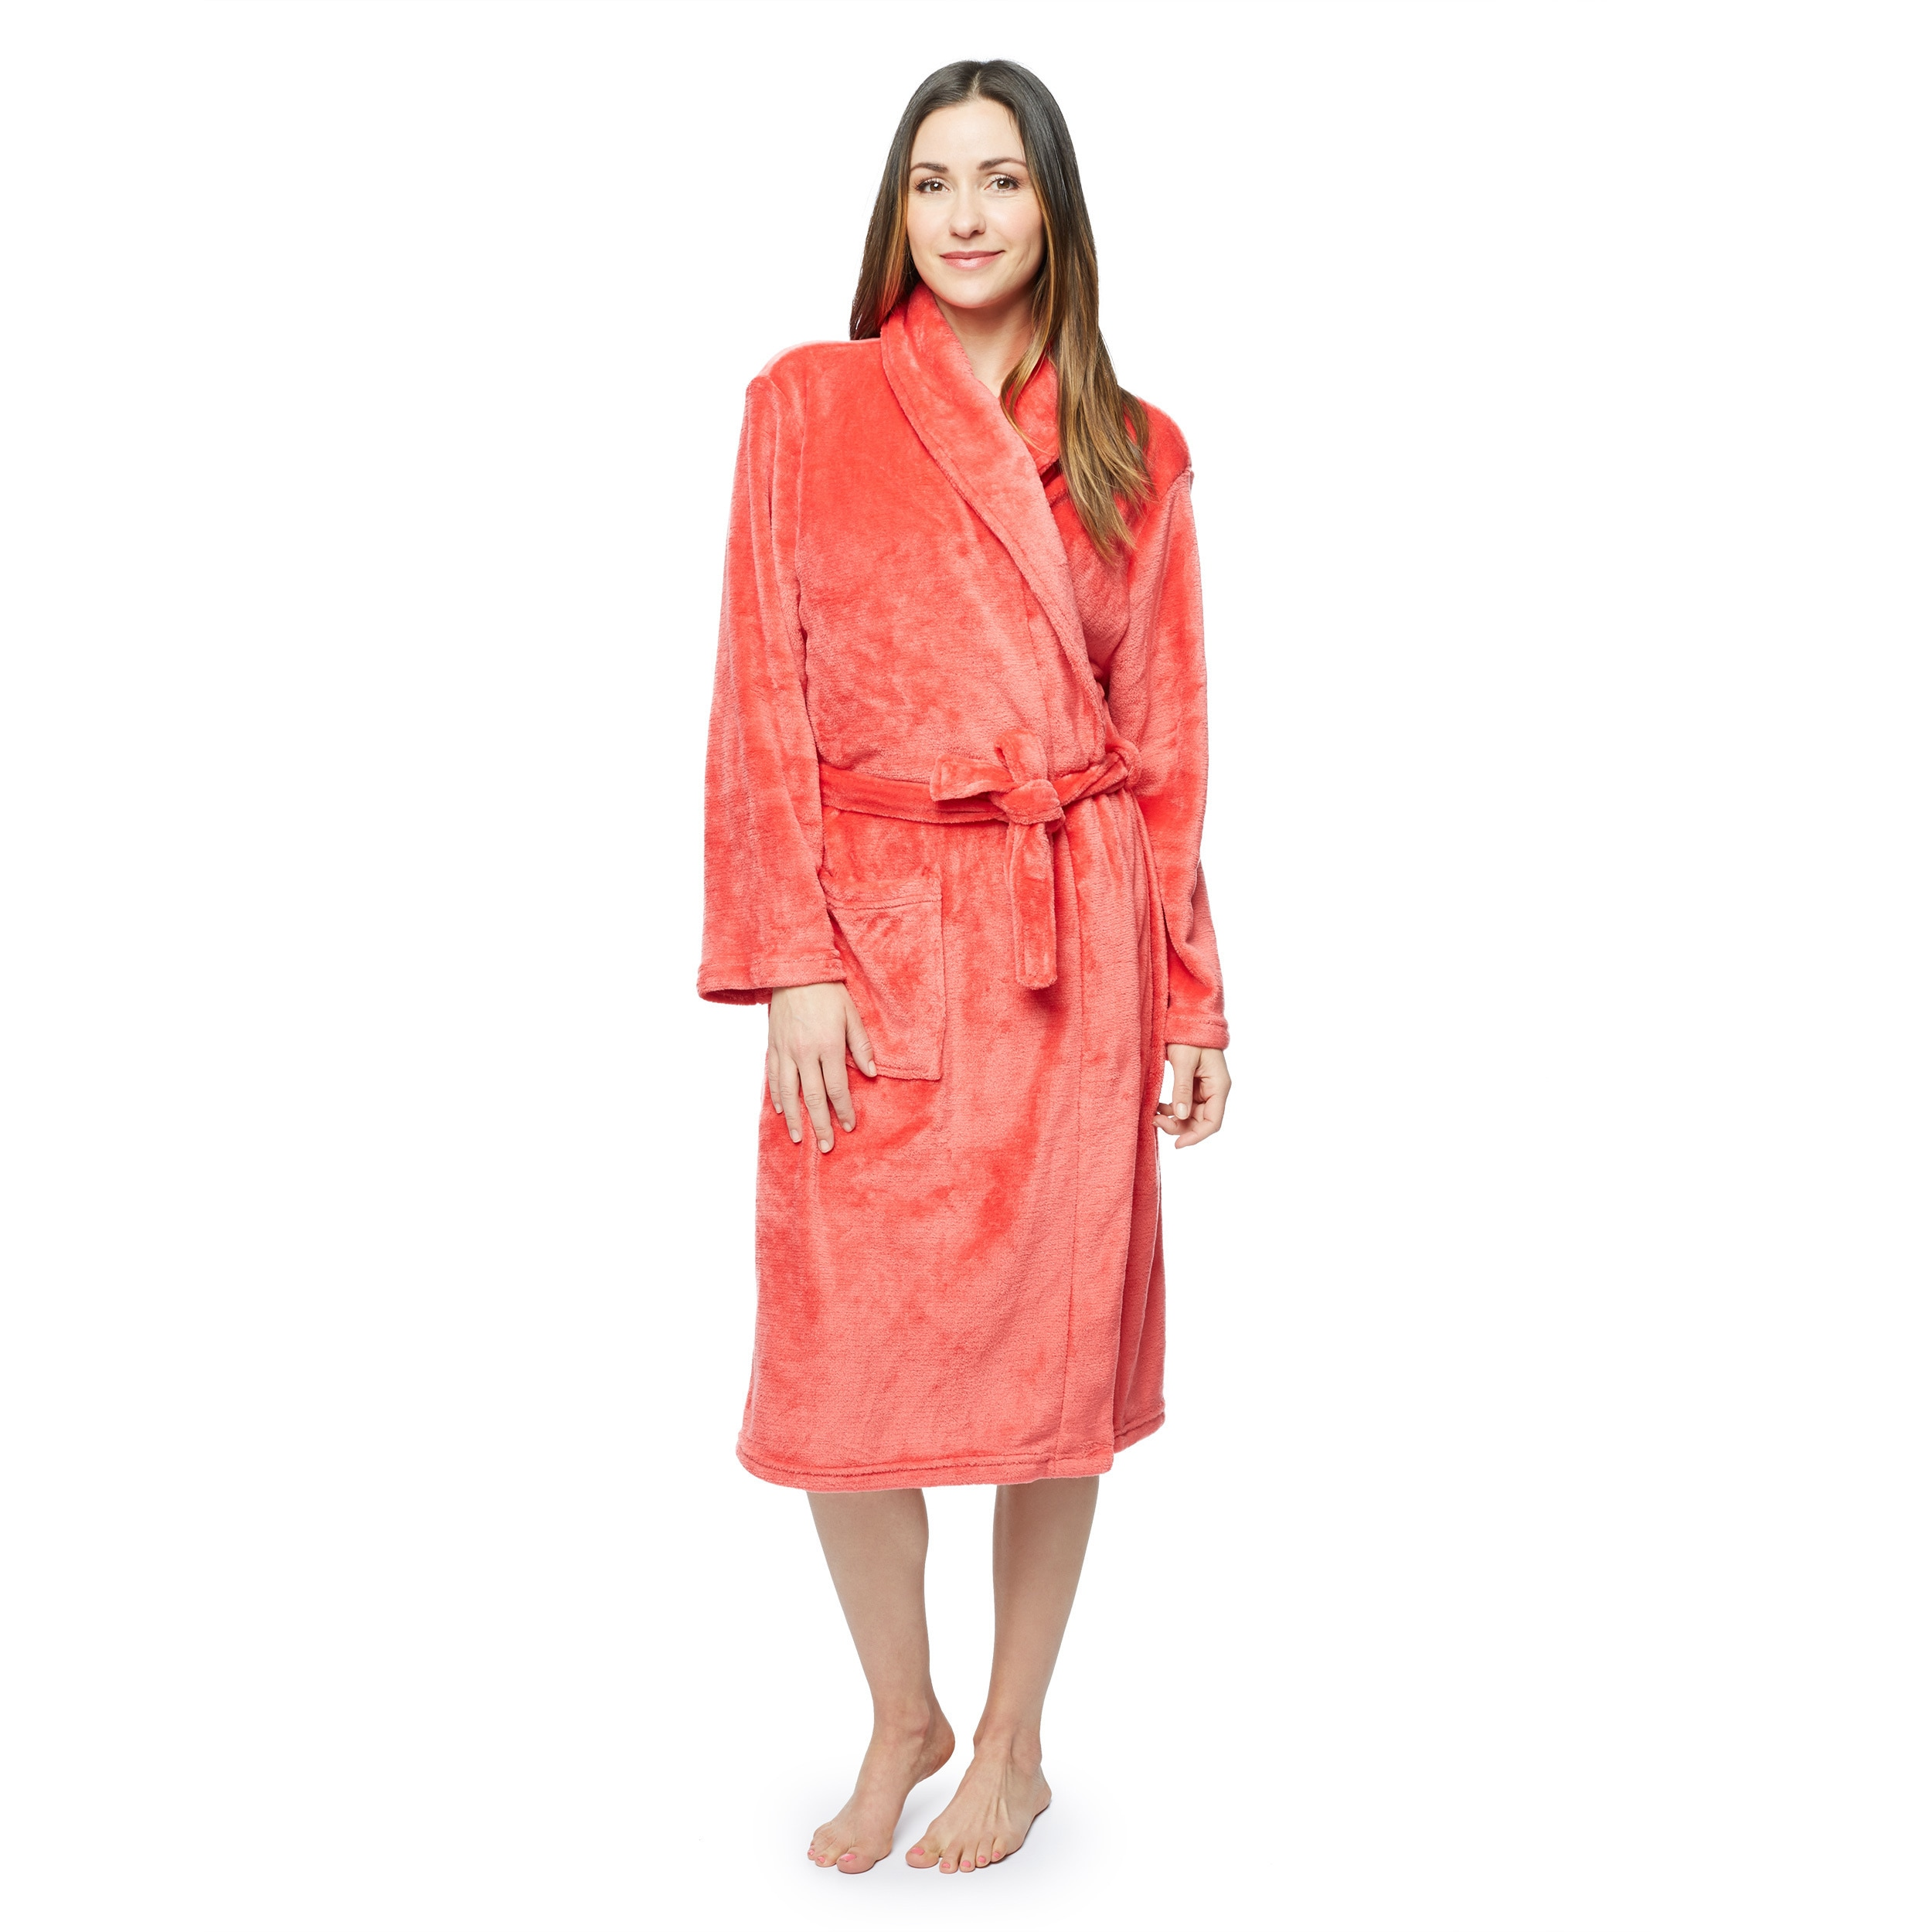 Bathrobes | Find Great Bath & Towels Deals Shopping at Overstock.com